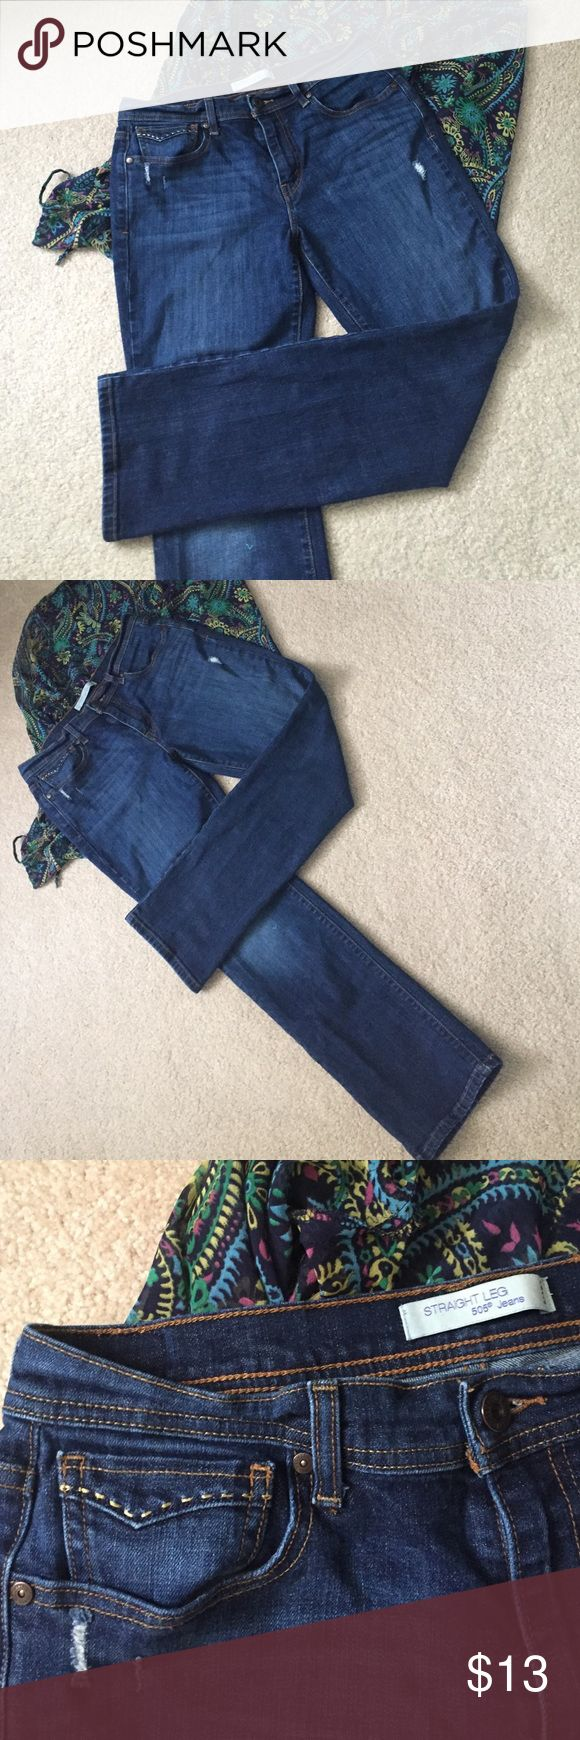 Levi's 506 Jeans Lightly distressed and fully fashionable! The jeans are just right for you! Excellent used condition! Size 10 M. Offers welcome! Levi's Jeans Straight Leg